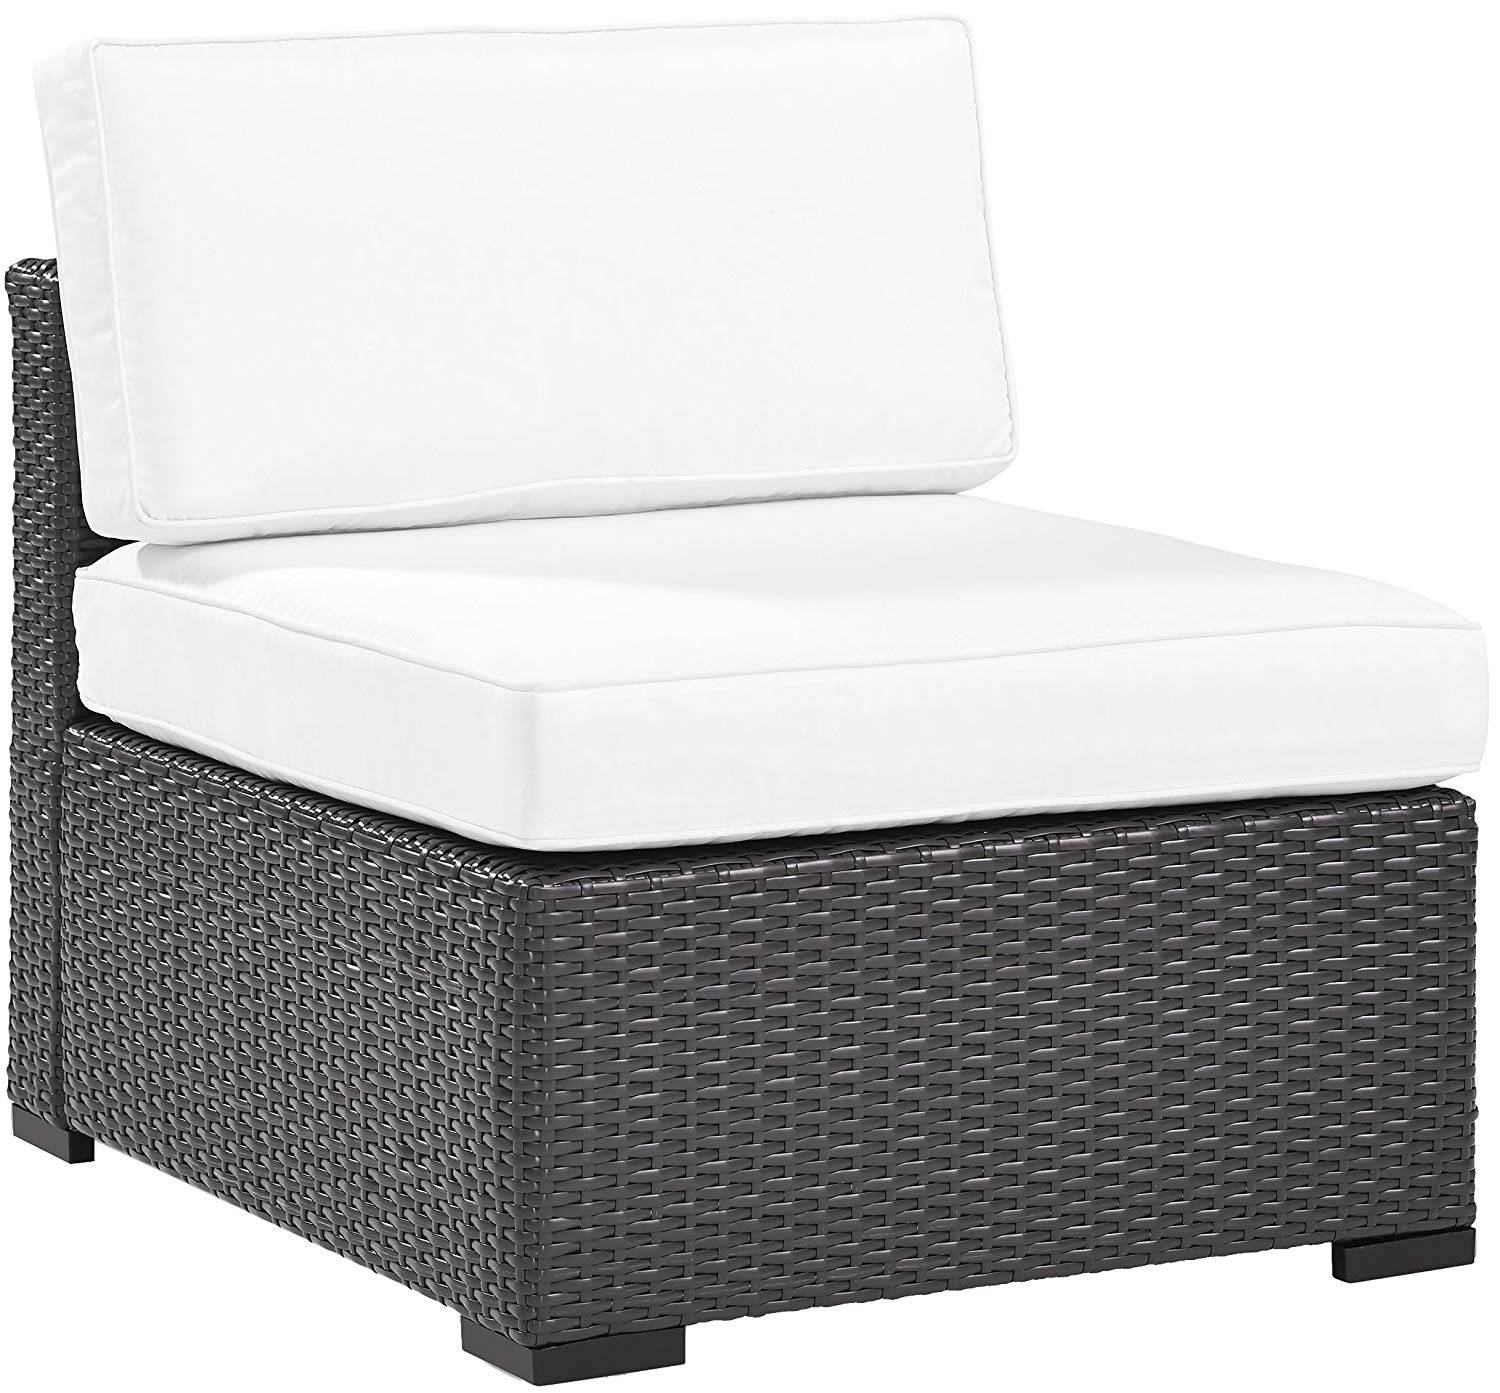 Crosley Furniture KO70125BR-WH Biscayne Outdoor Wicker Armless Chair Cushions, White